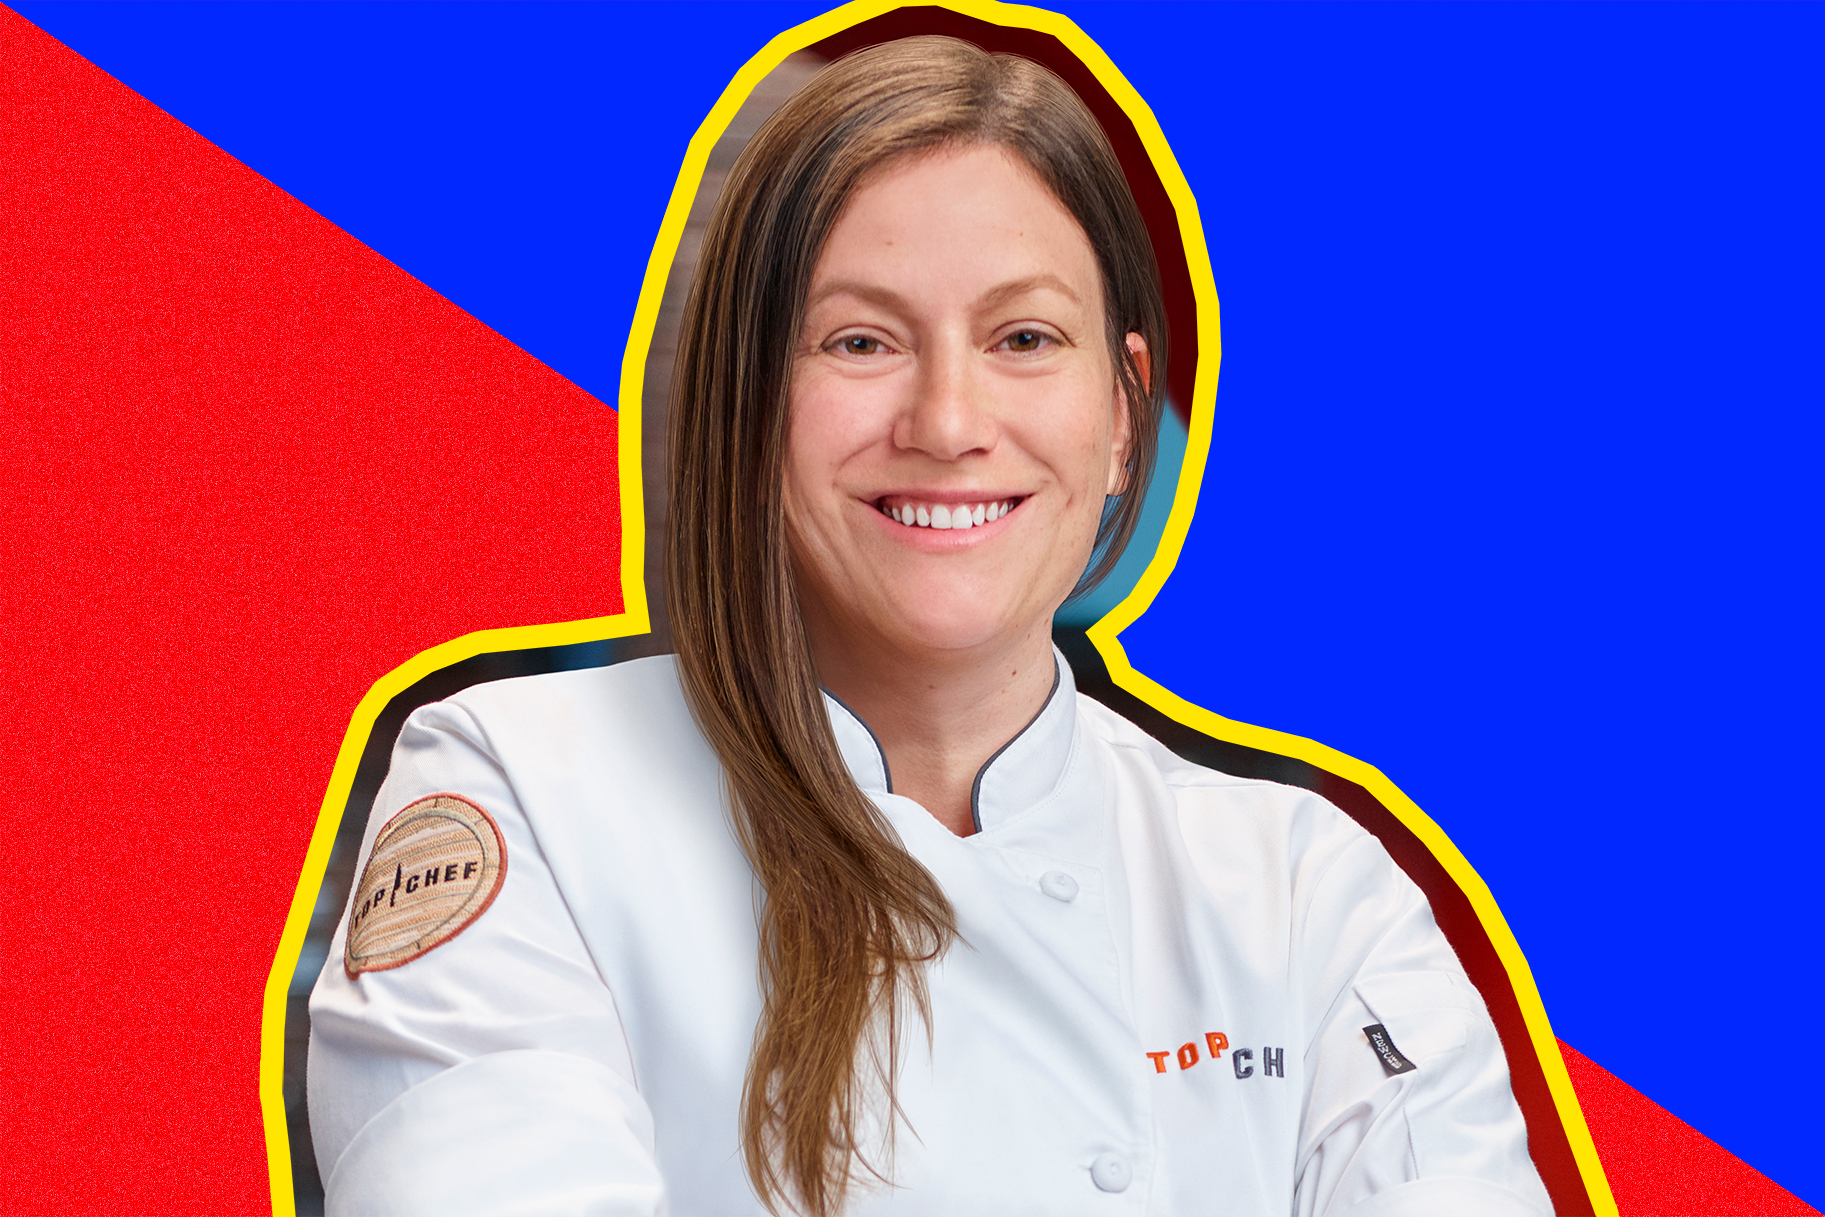 Top Chef Season 16 Finalist Sara Bradley